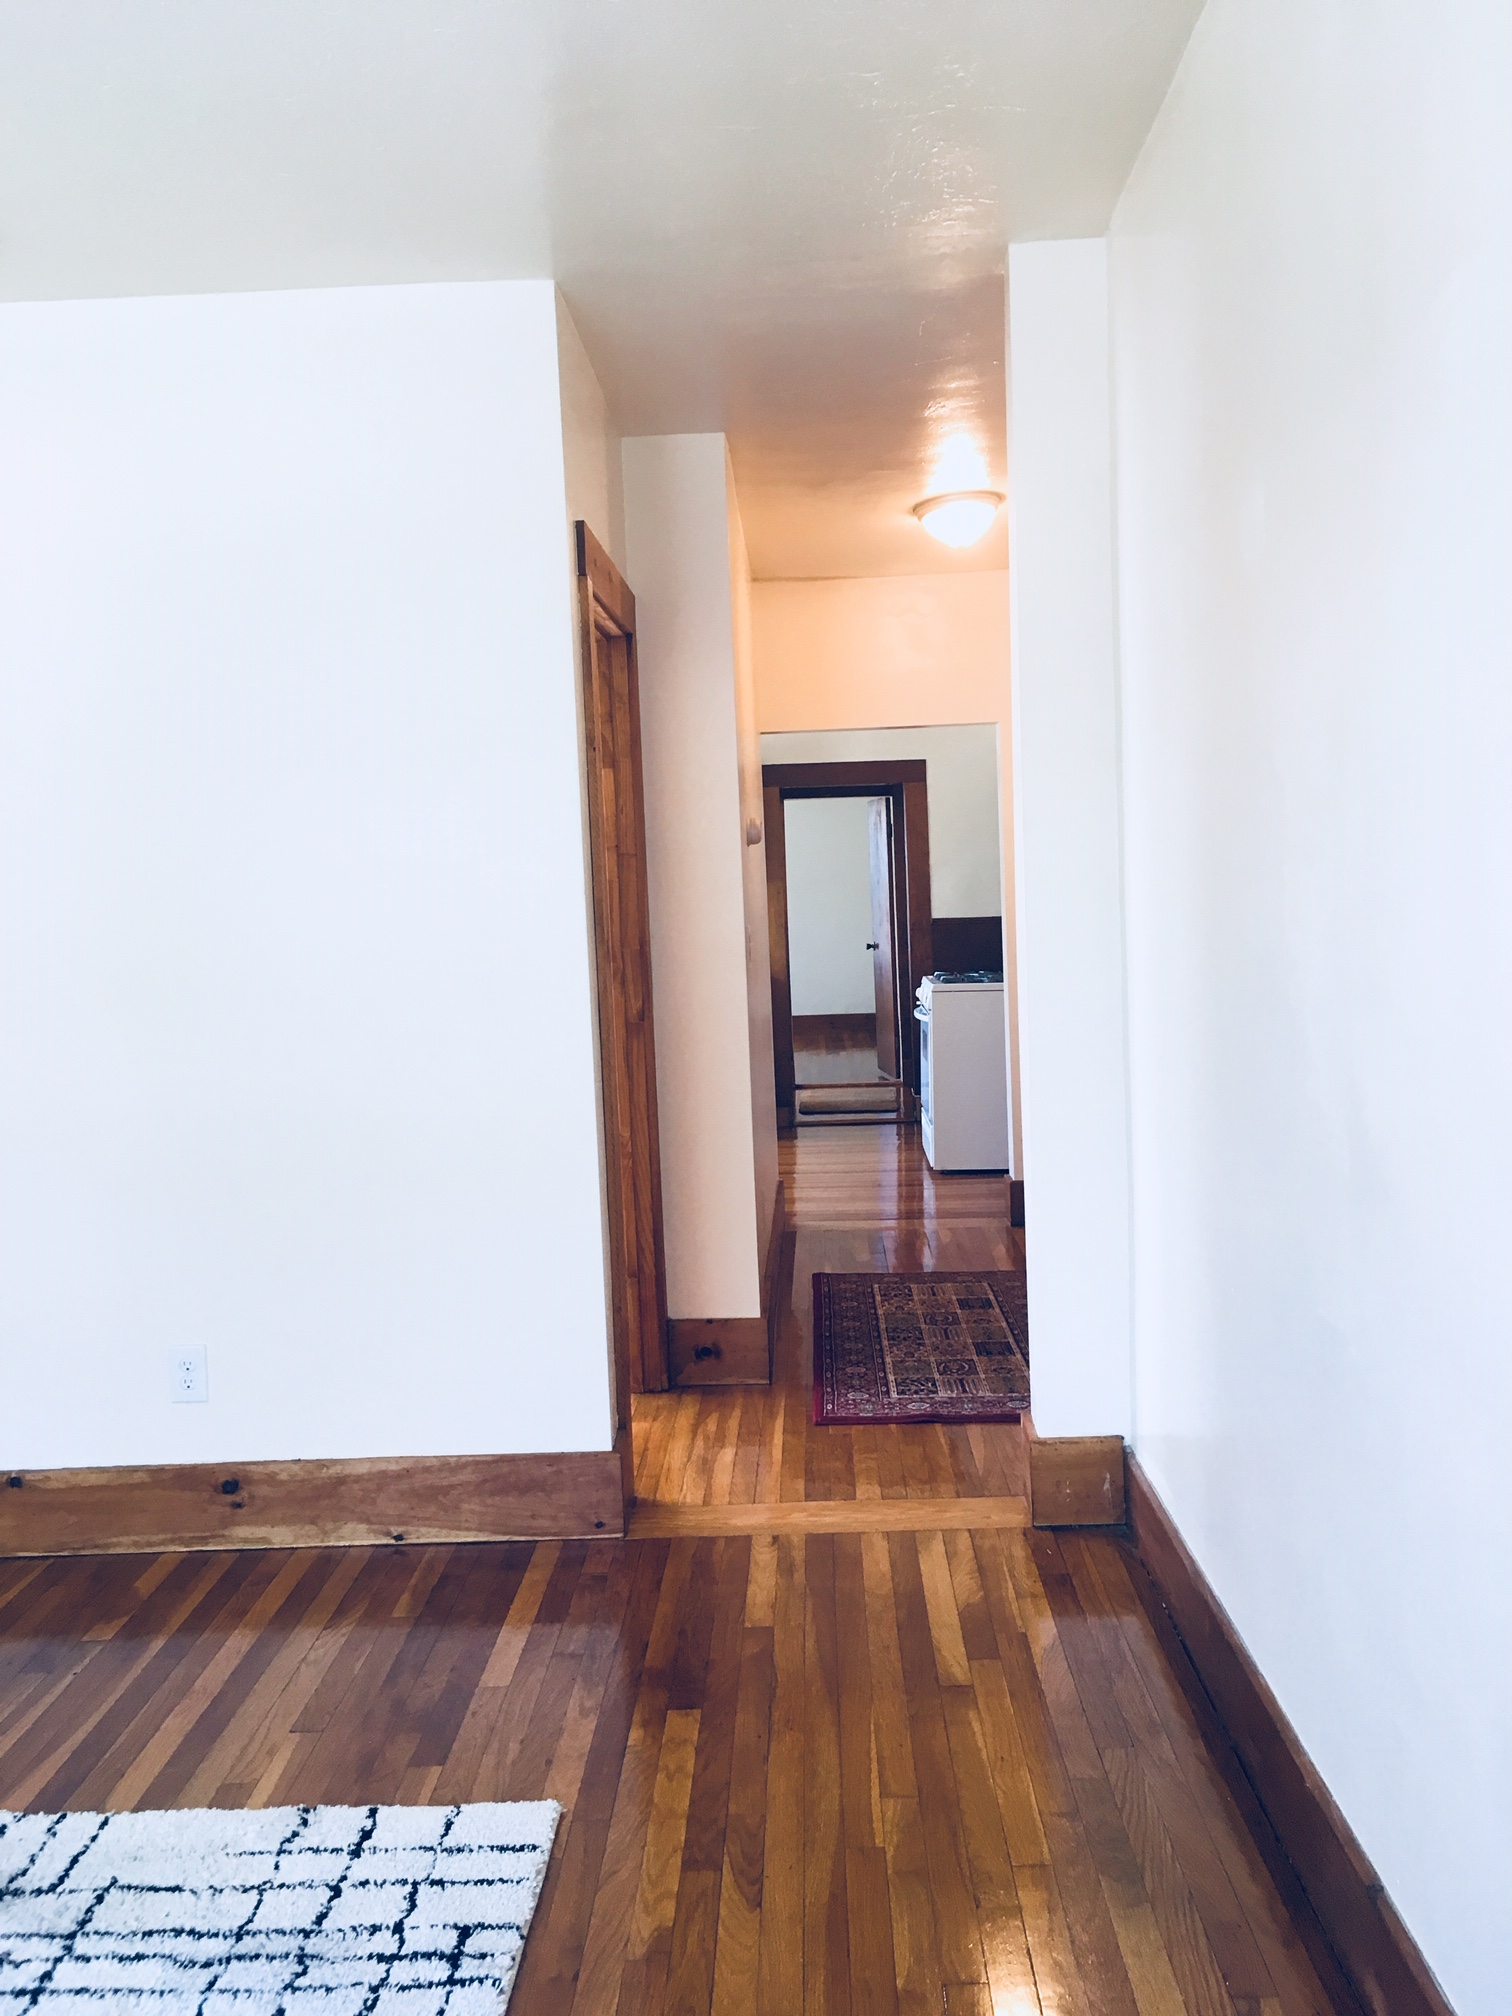 Pictures of  property for rent on Washington St., Boston, MA 02131